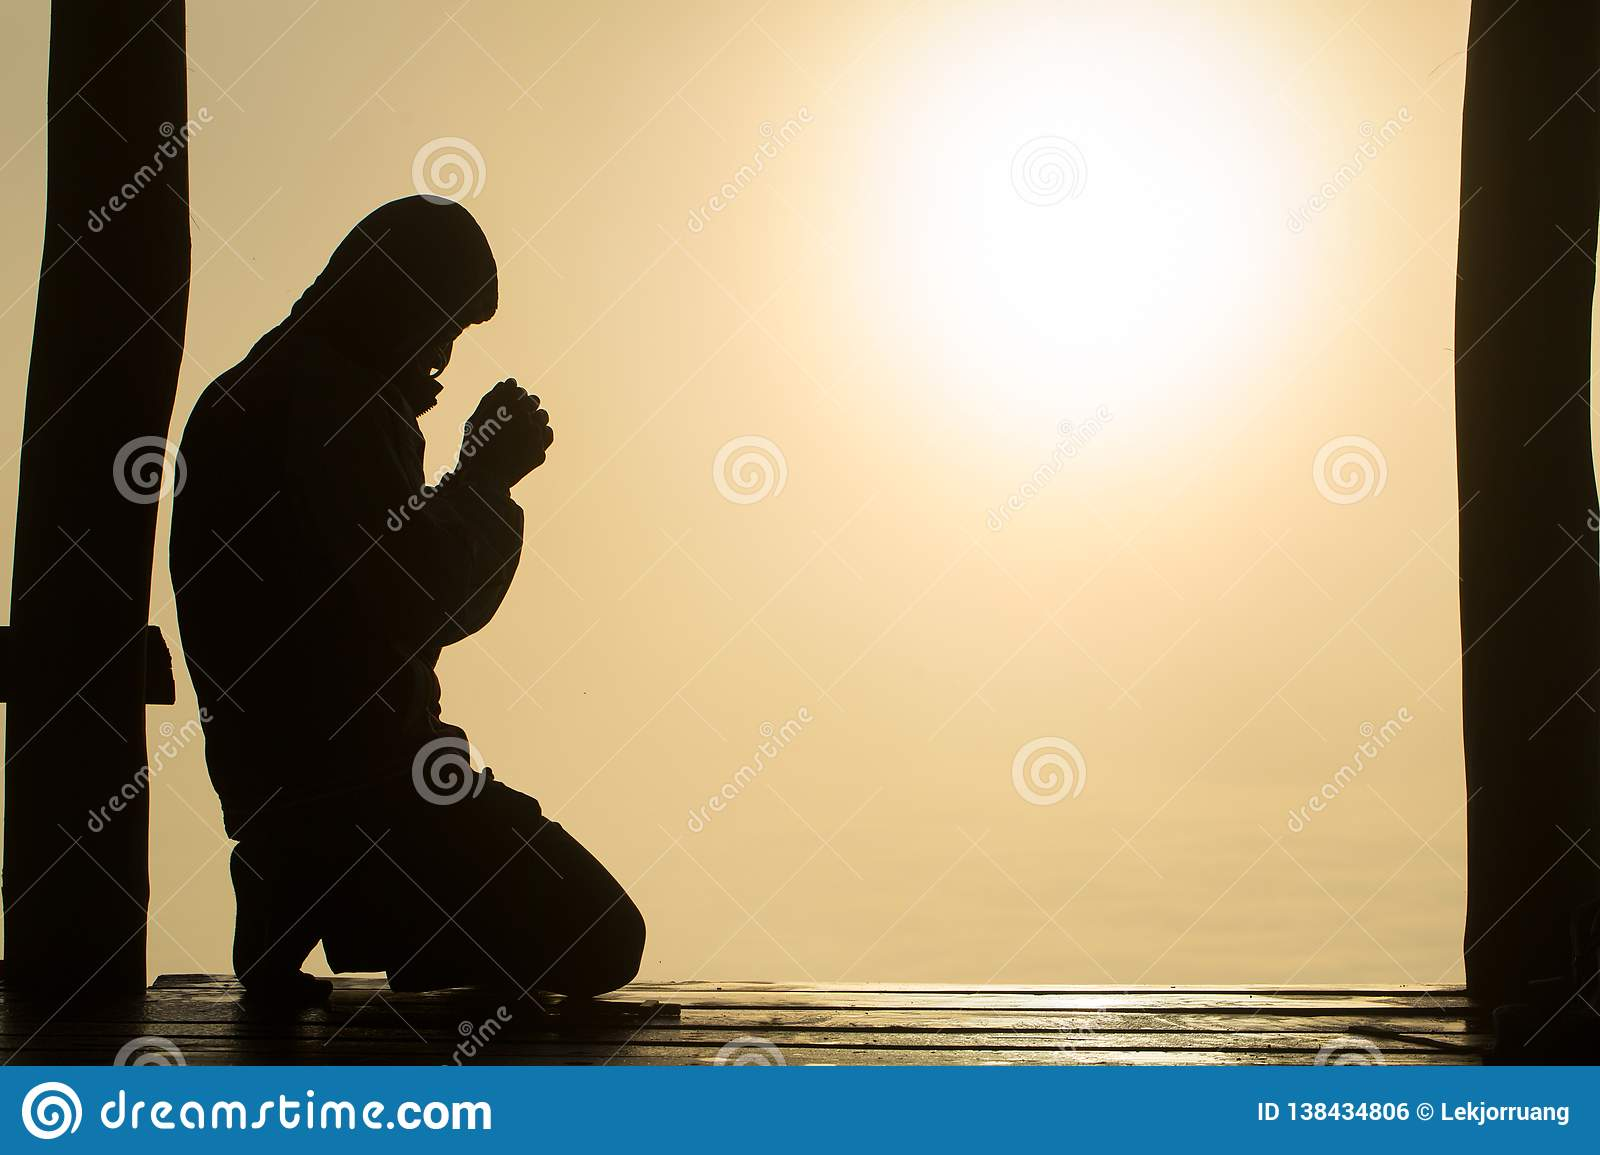 Silhouette of young human hands praying to god at sunrise, Christian Religion concept background